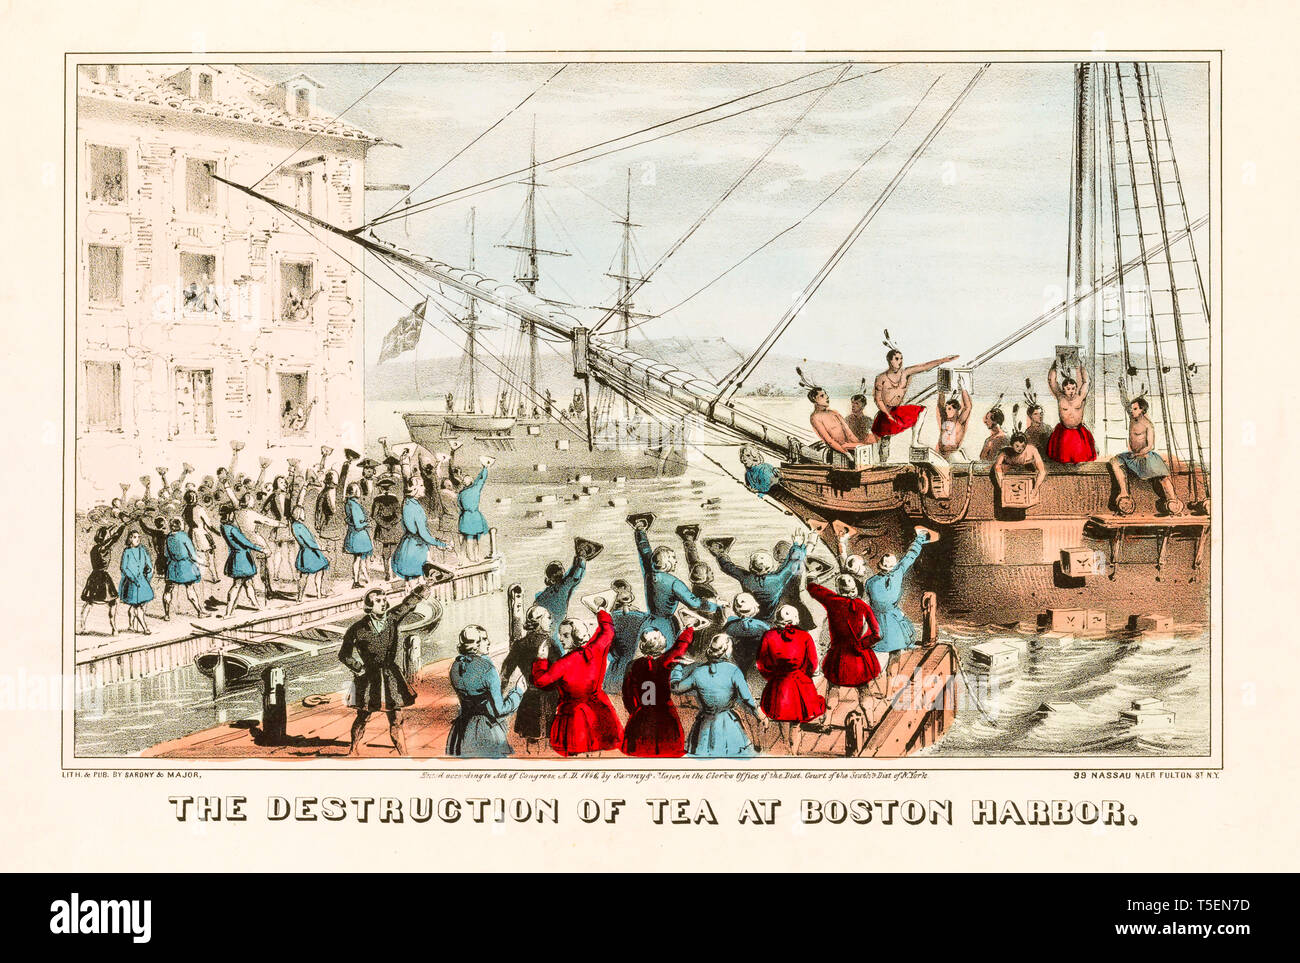 'The Destruction of Tea at Boston Harbor', hand coloured engraving of the Boston Tea Party, December 16th 1773,  print made in 1846 - Stock Image